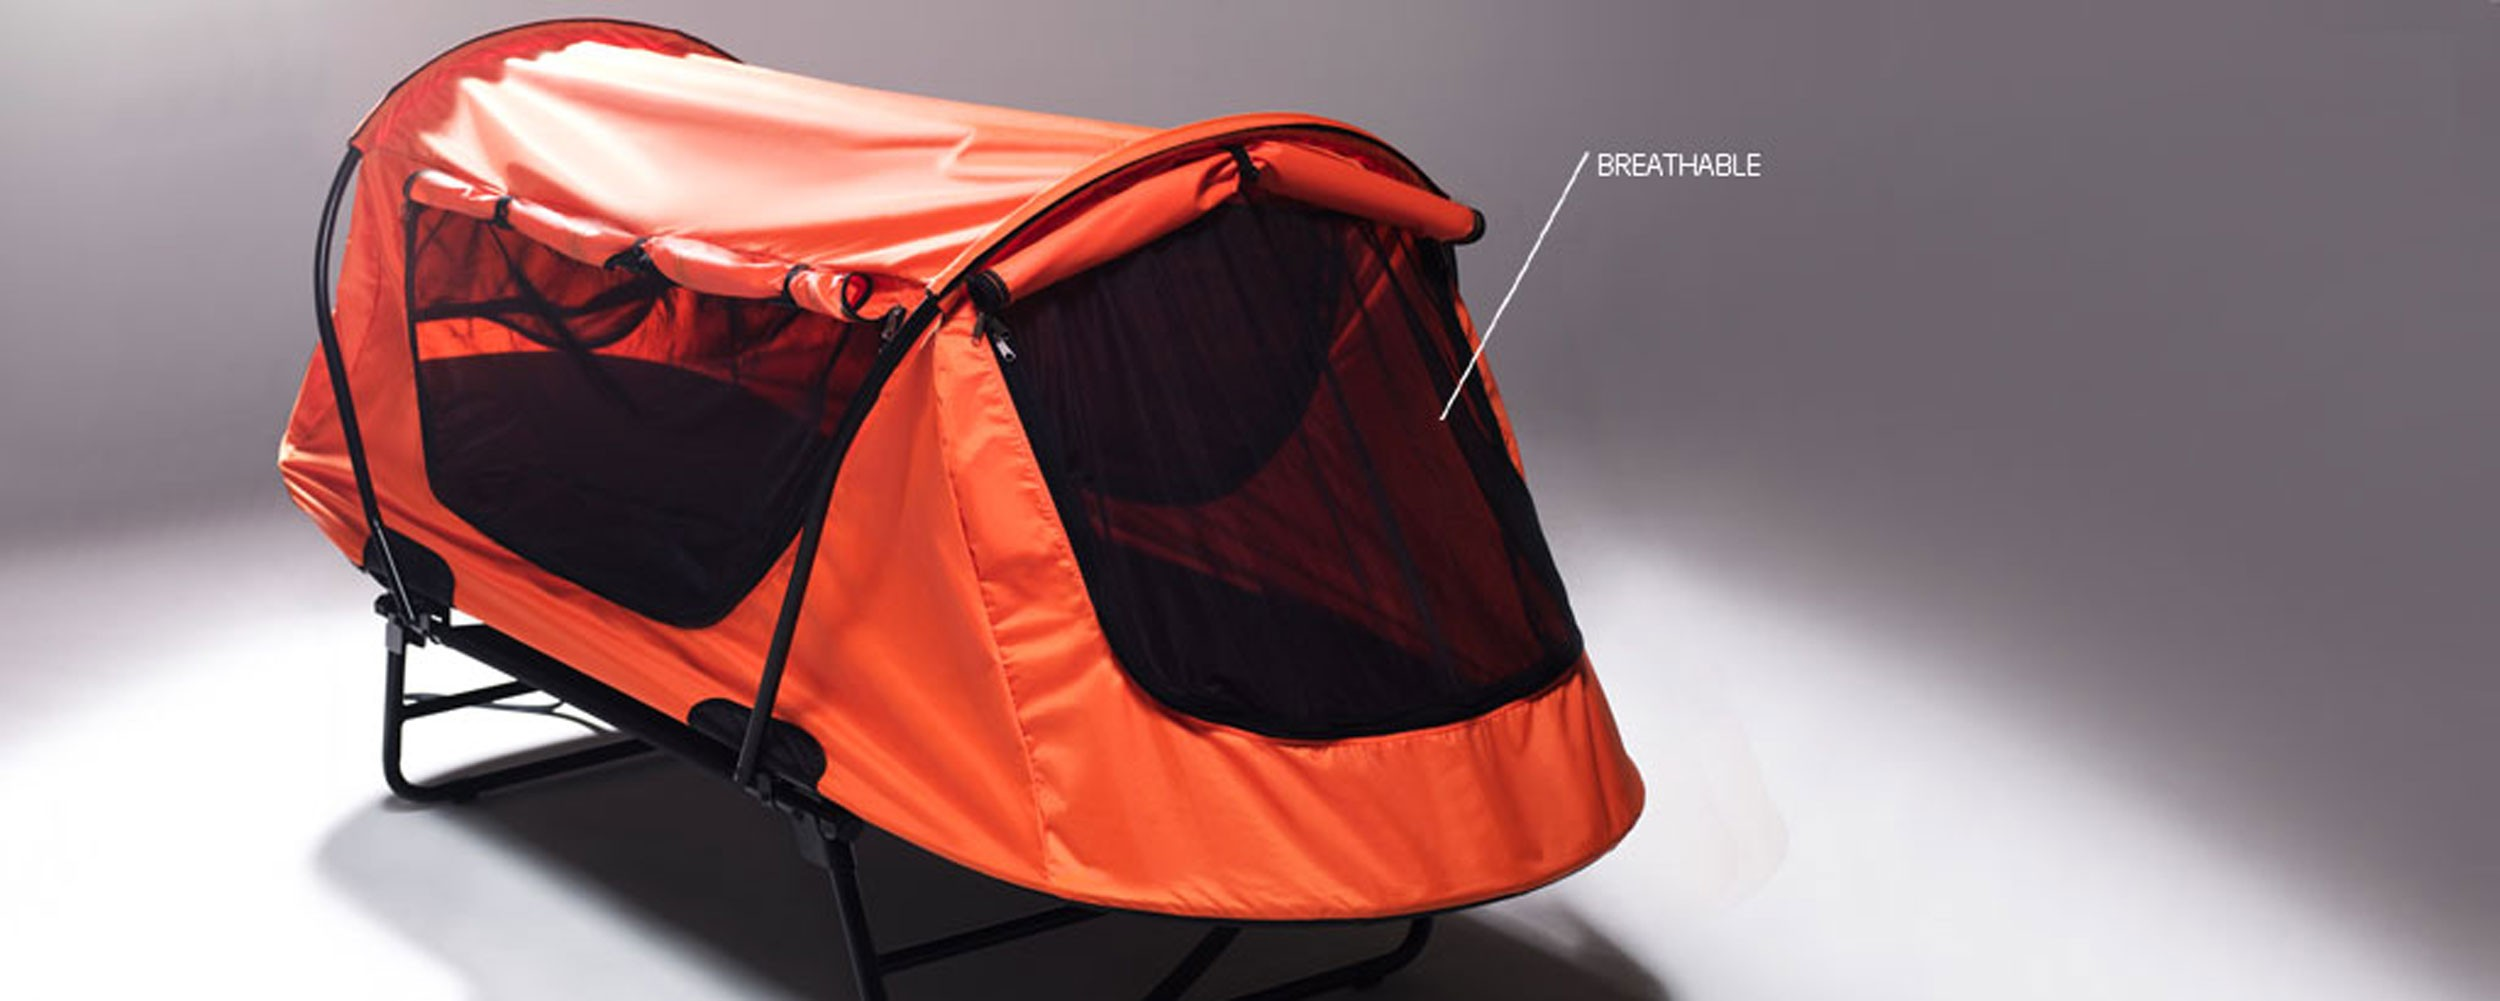 More Views & 1 Person Smart Tent